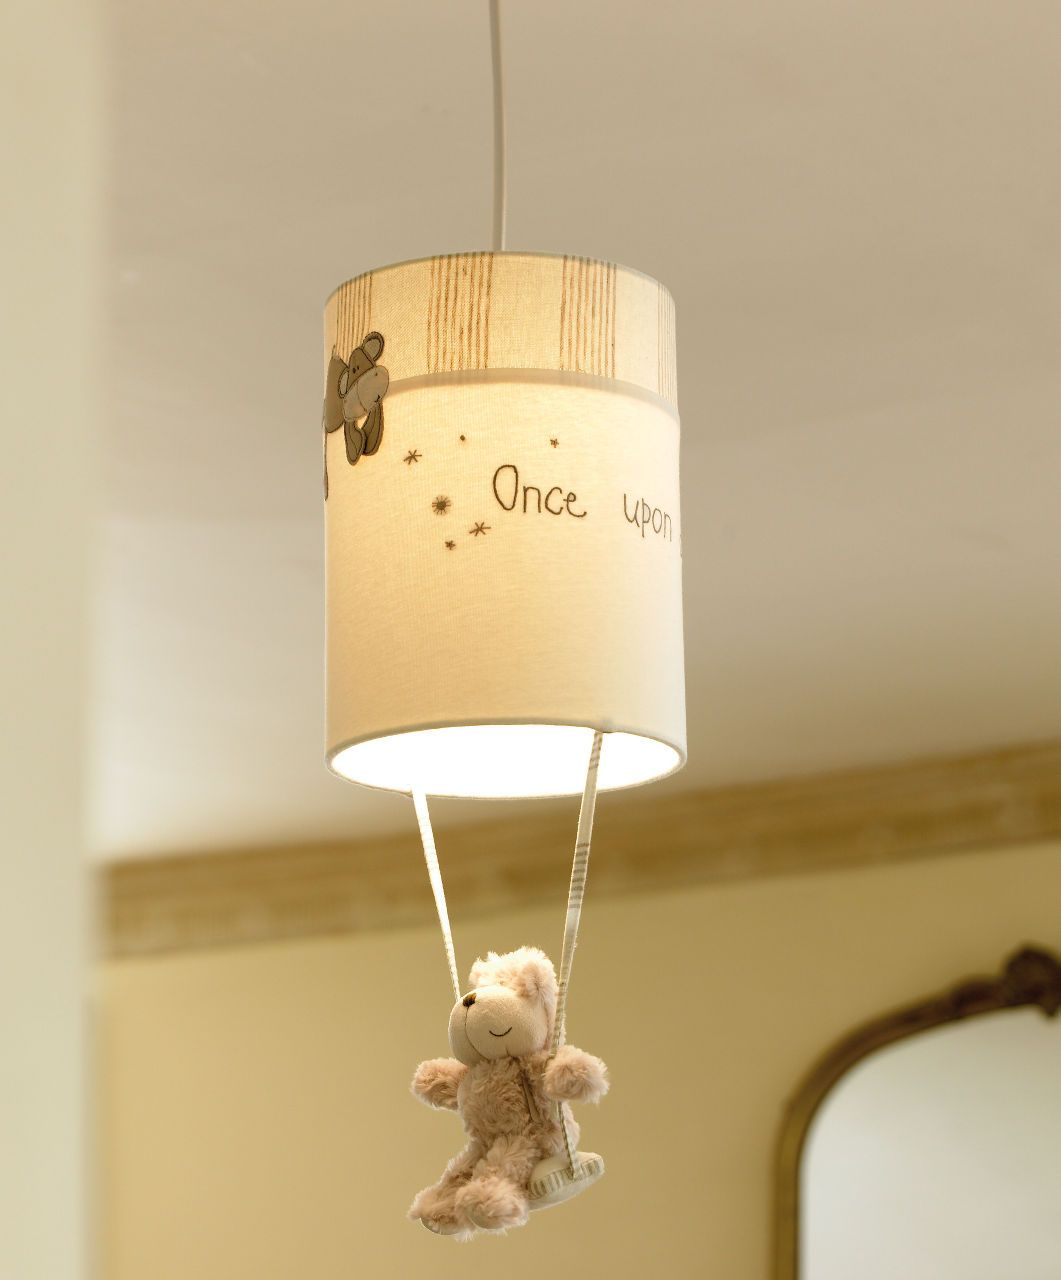 Once Upon a Time - Lampshade - Nursery Accessories - Mamas & Papas ...